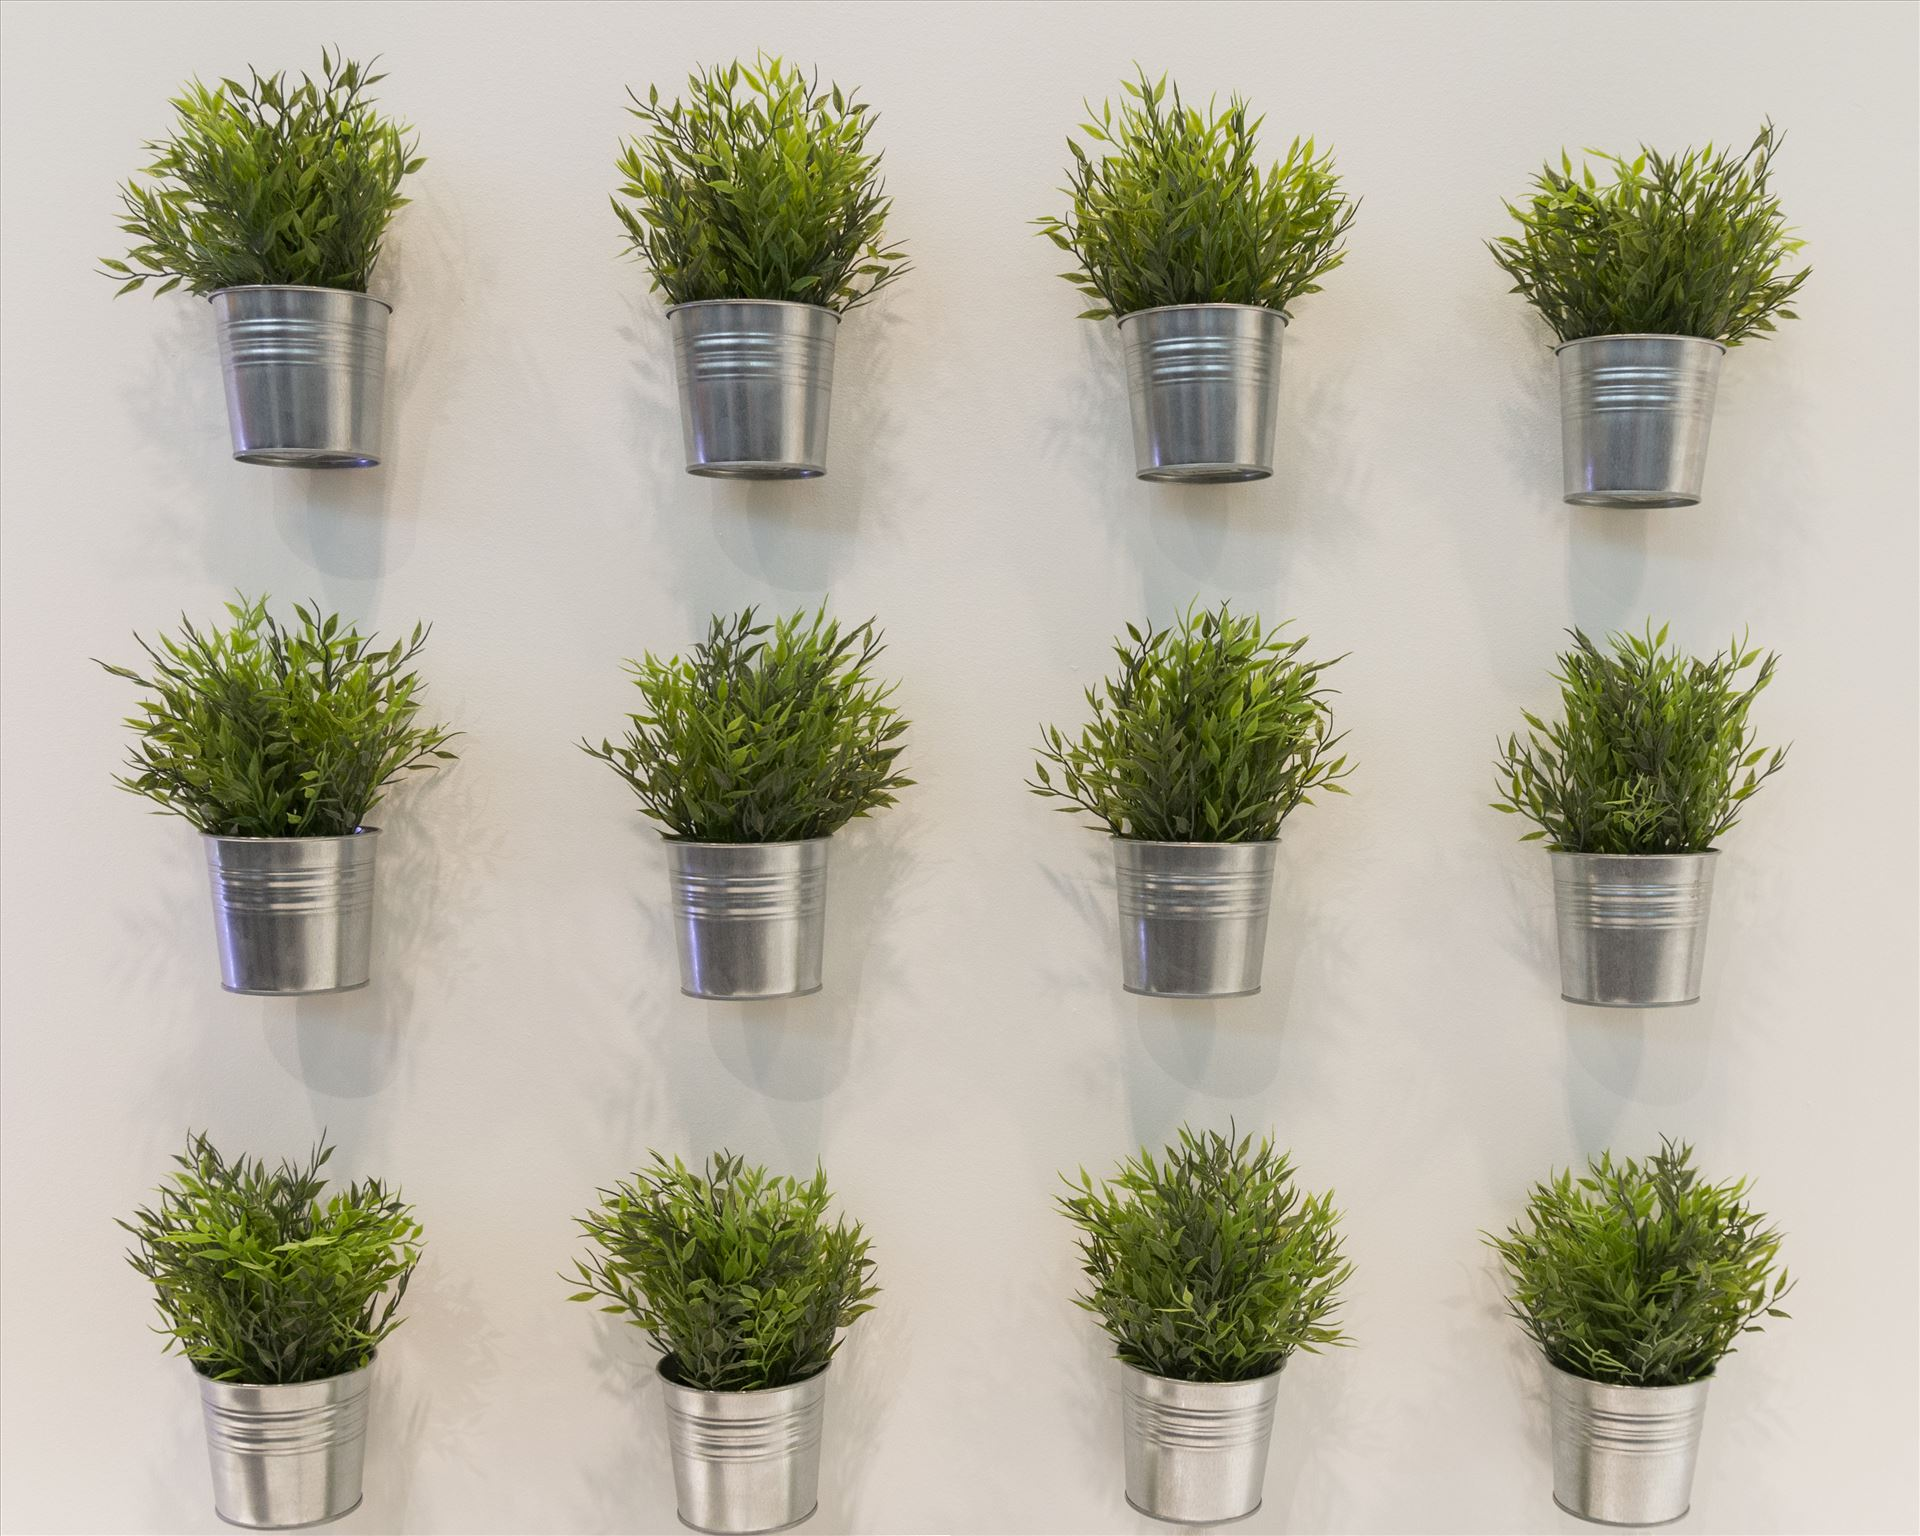 Green - Green plants on wall in vertical lines by Pucko